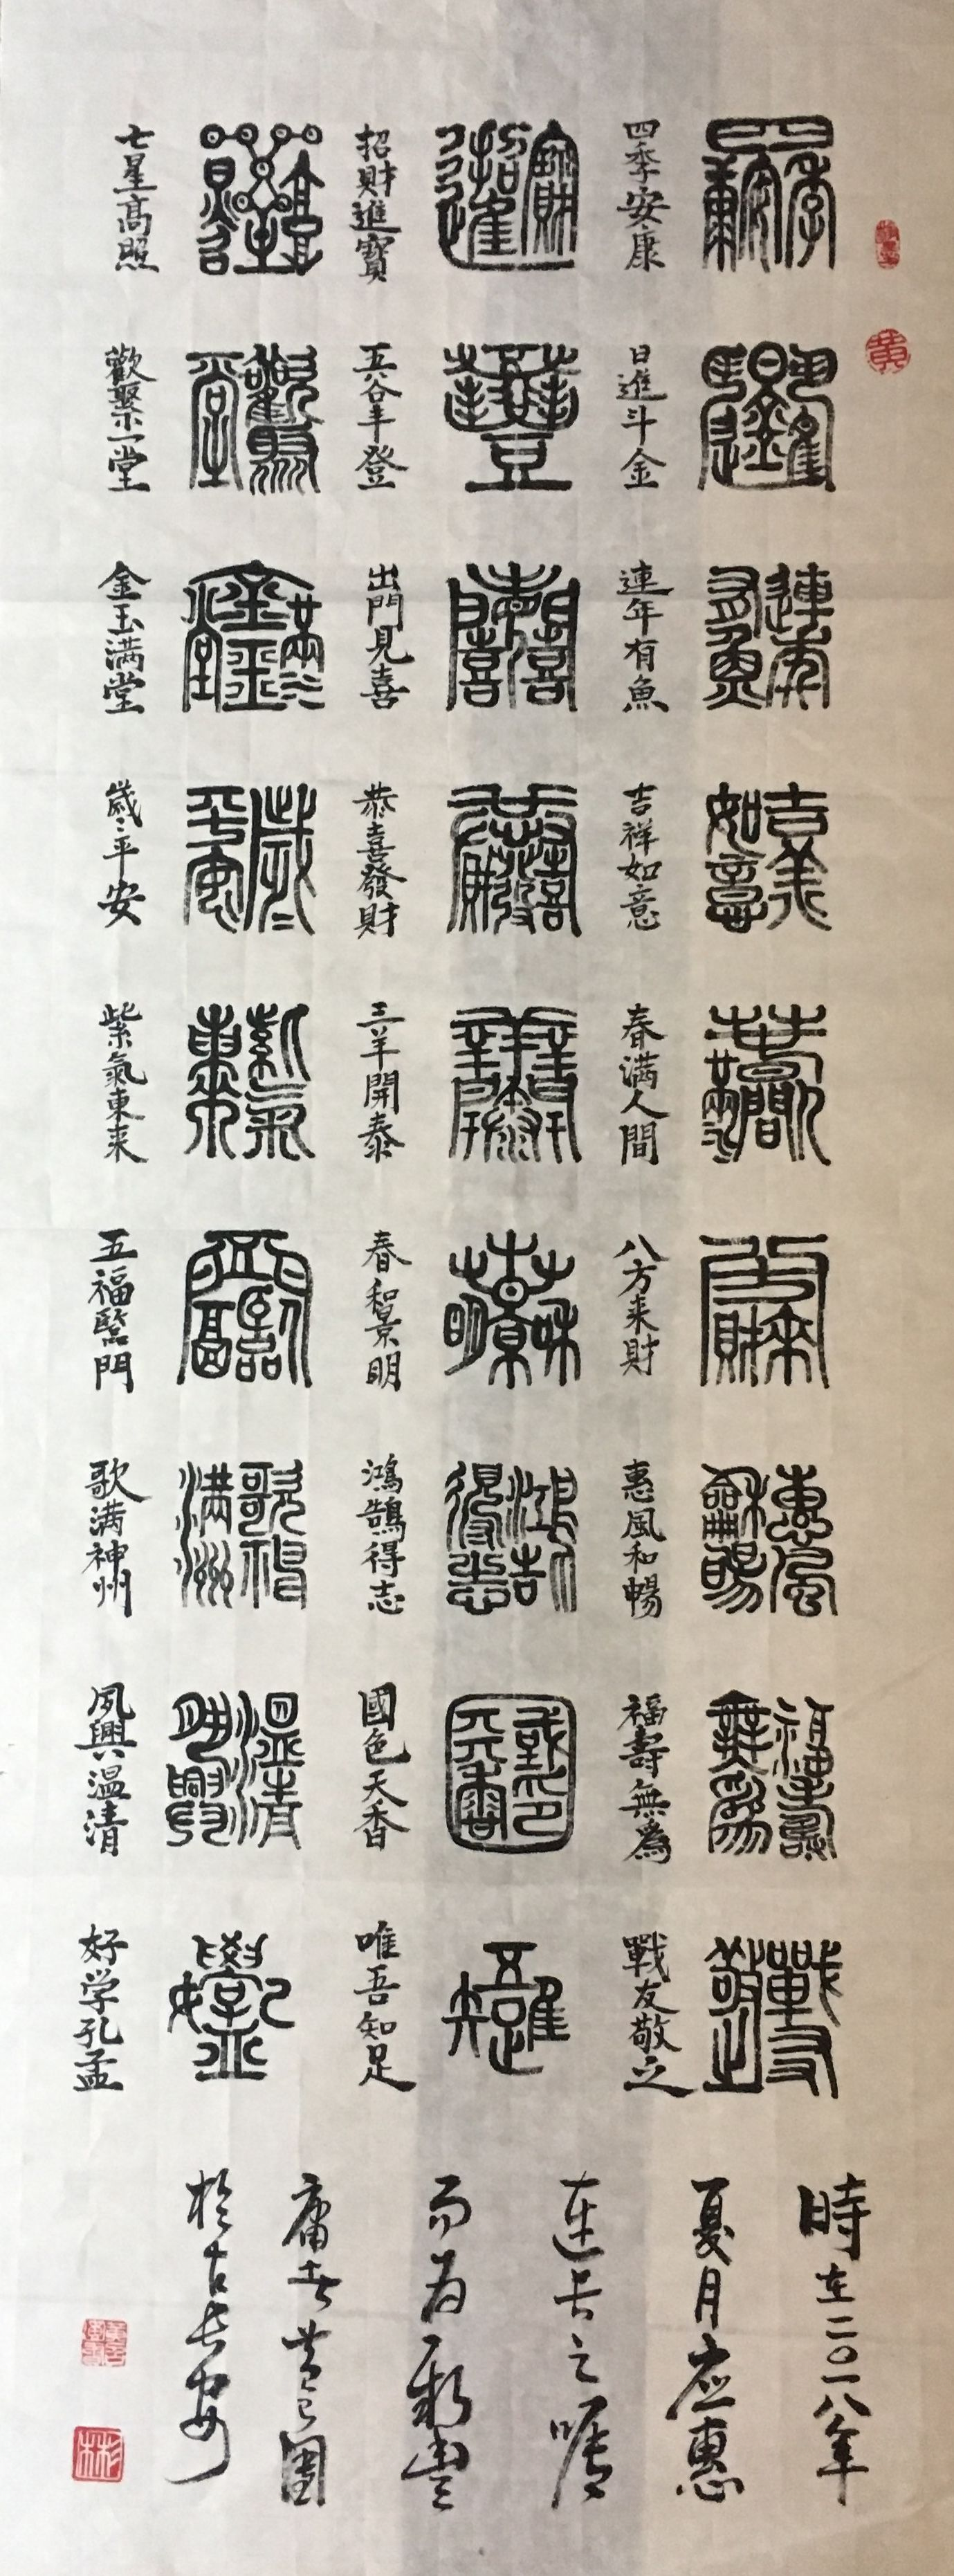 Pin By Simon So On 书法 离你很远也很近 Chinese Calligraphy Chinese Typography Chinese Words